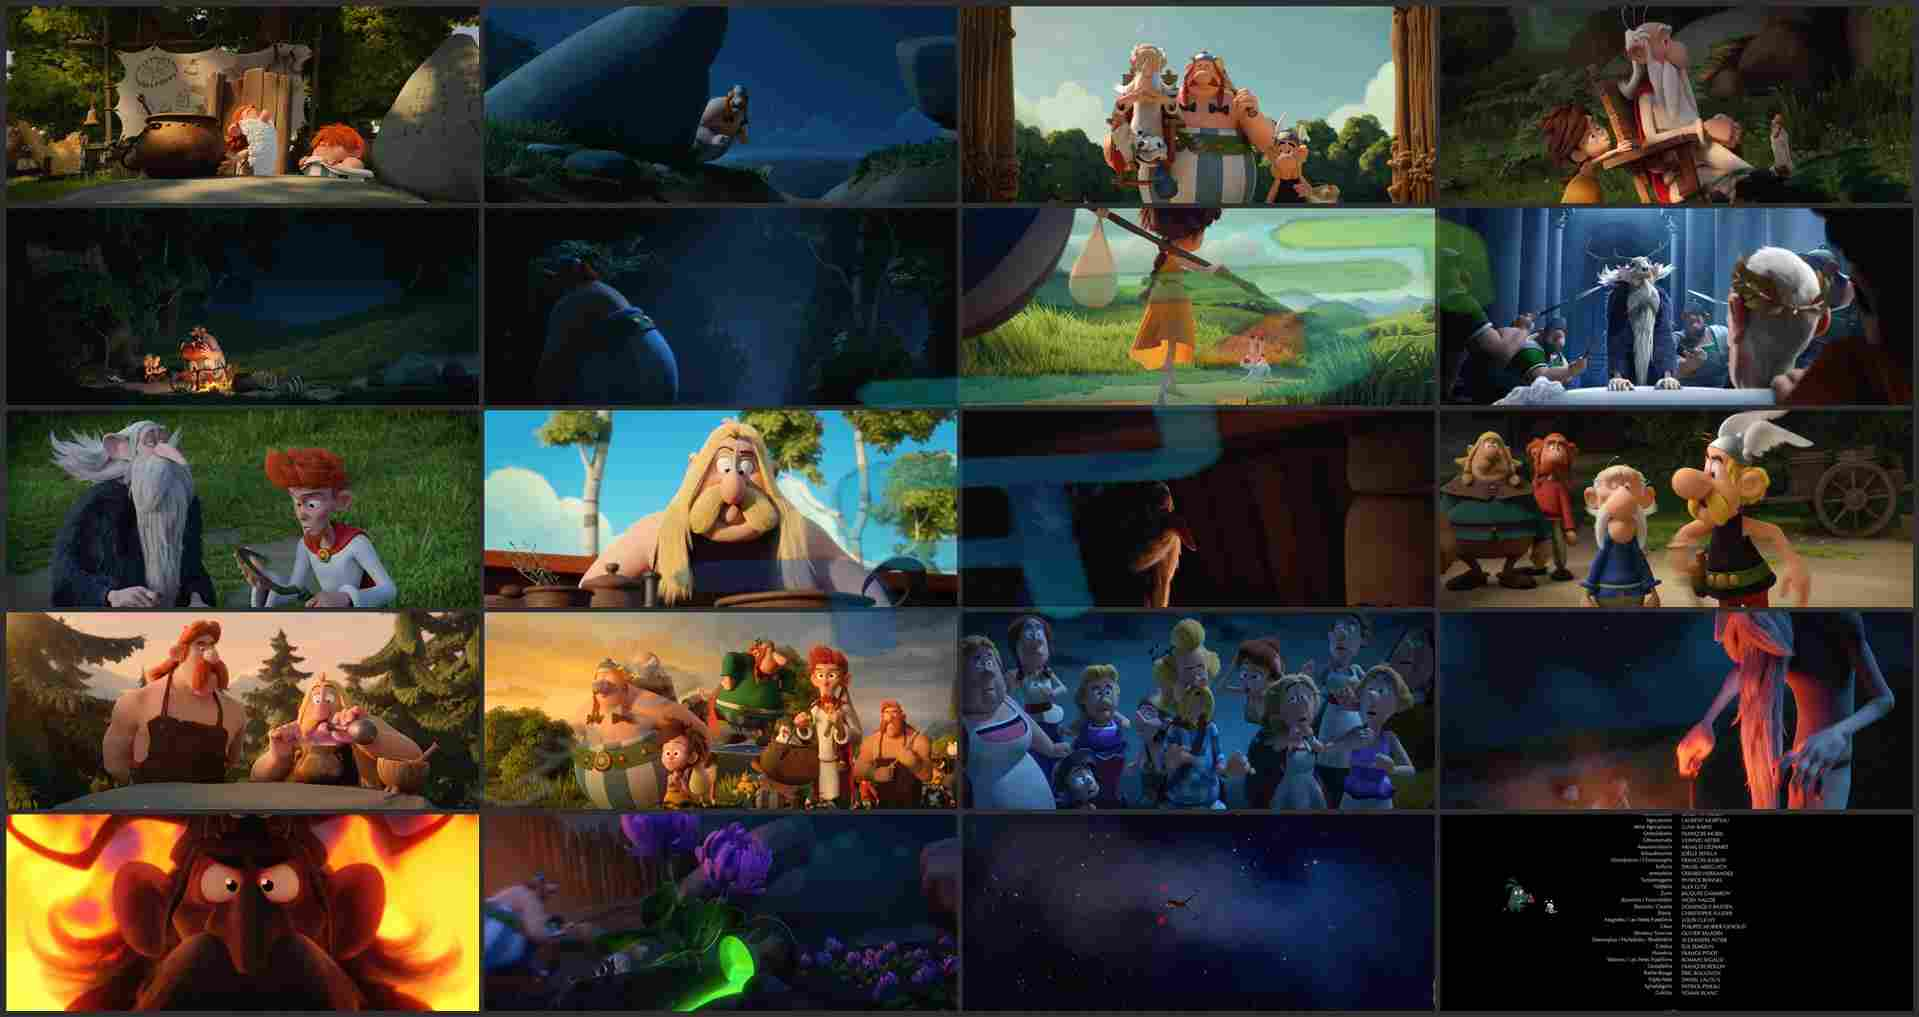 Asterix_The_Secret_Of_The_Magic_Potion_2018_1080p_BluRay__www.download.ir.mp4 (Copy)